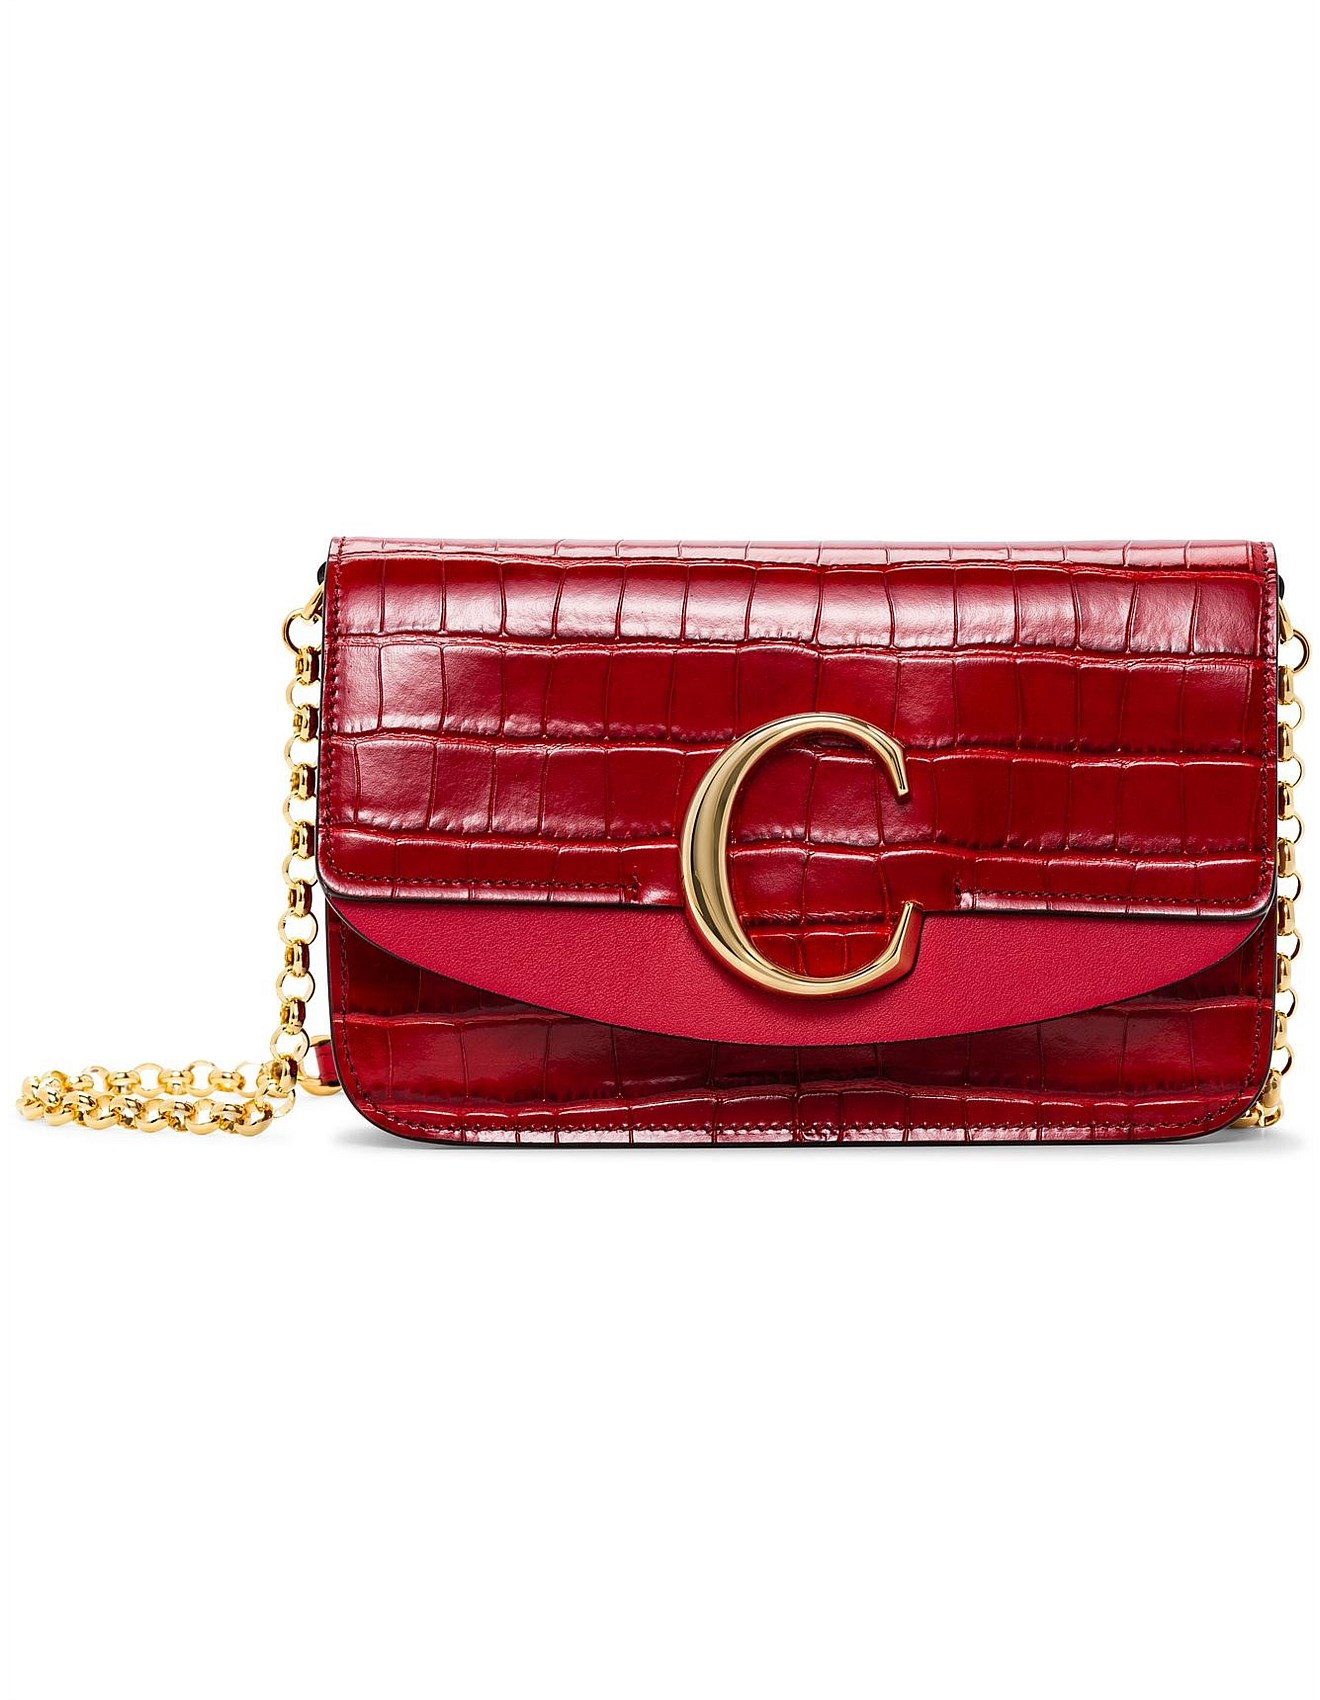 3035050bf1 Womens Bags - CHLOE C CLUTCH WITH CHAIN